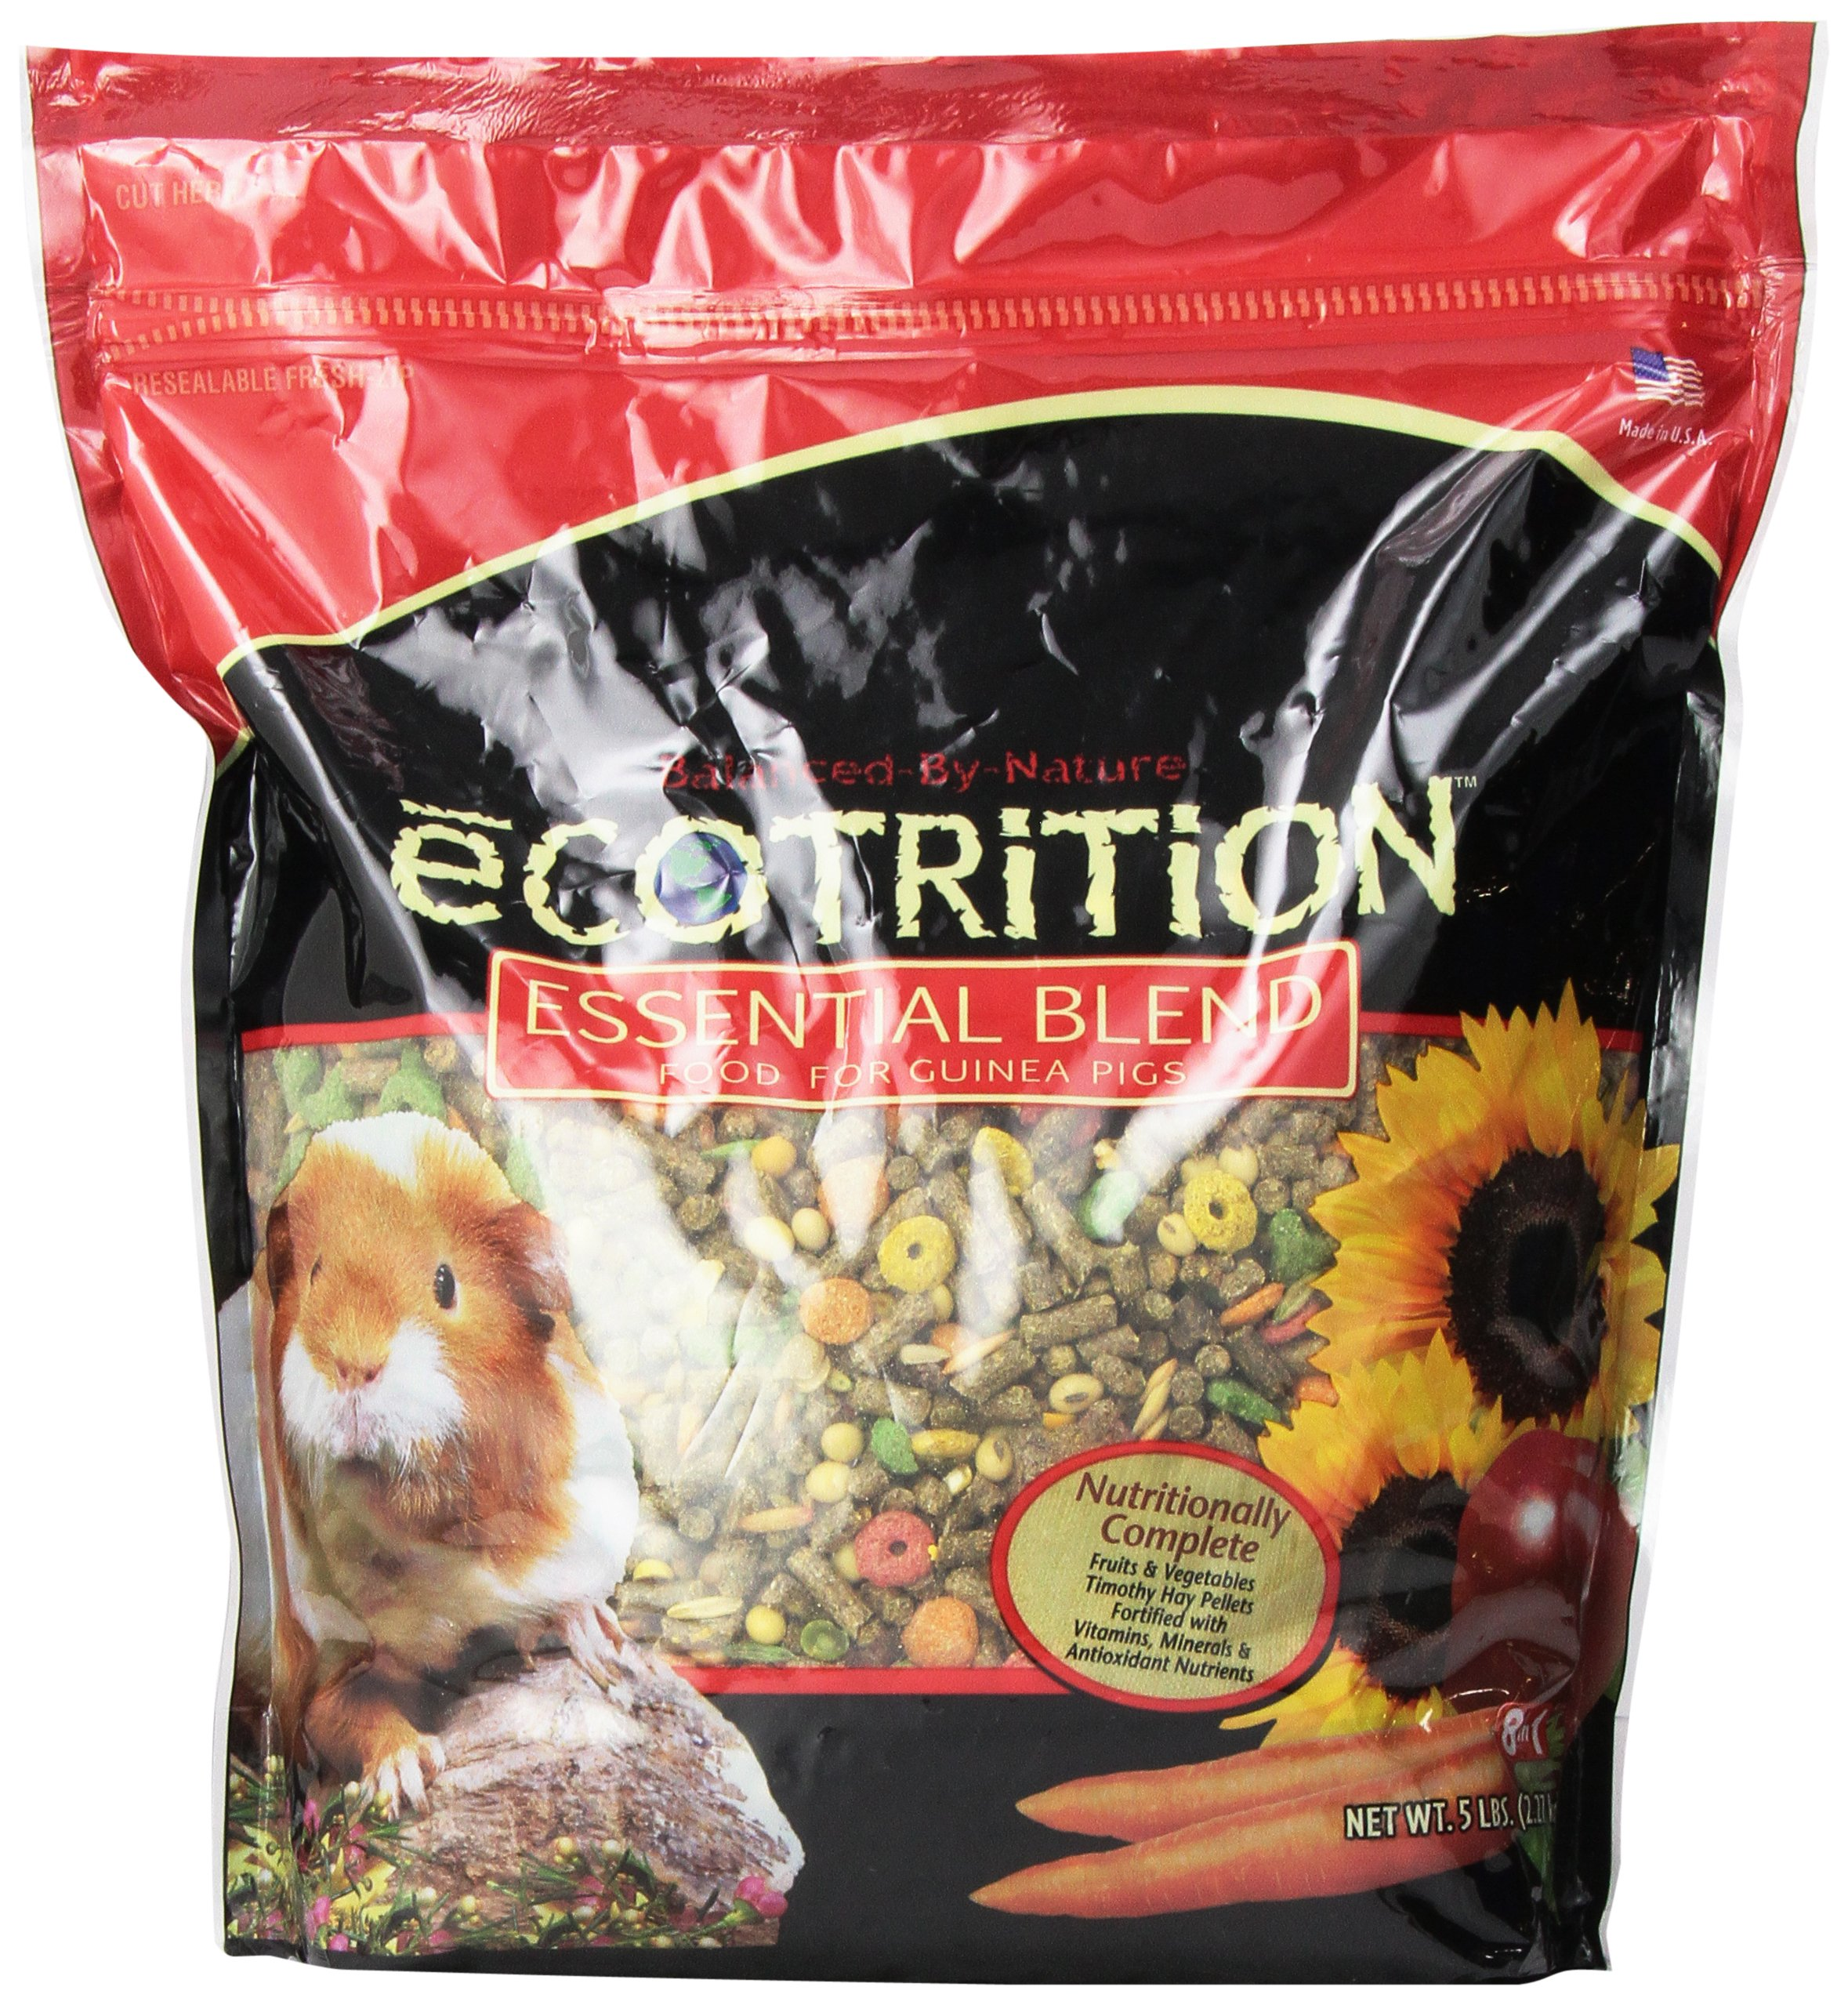 eCOTRITION Essential Blend Food For Guinea Pigs, 5-Pound